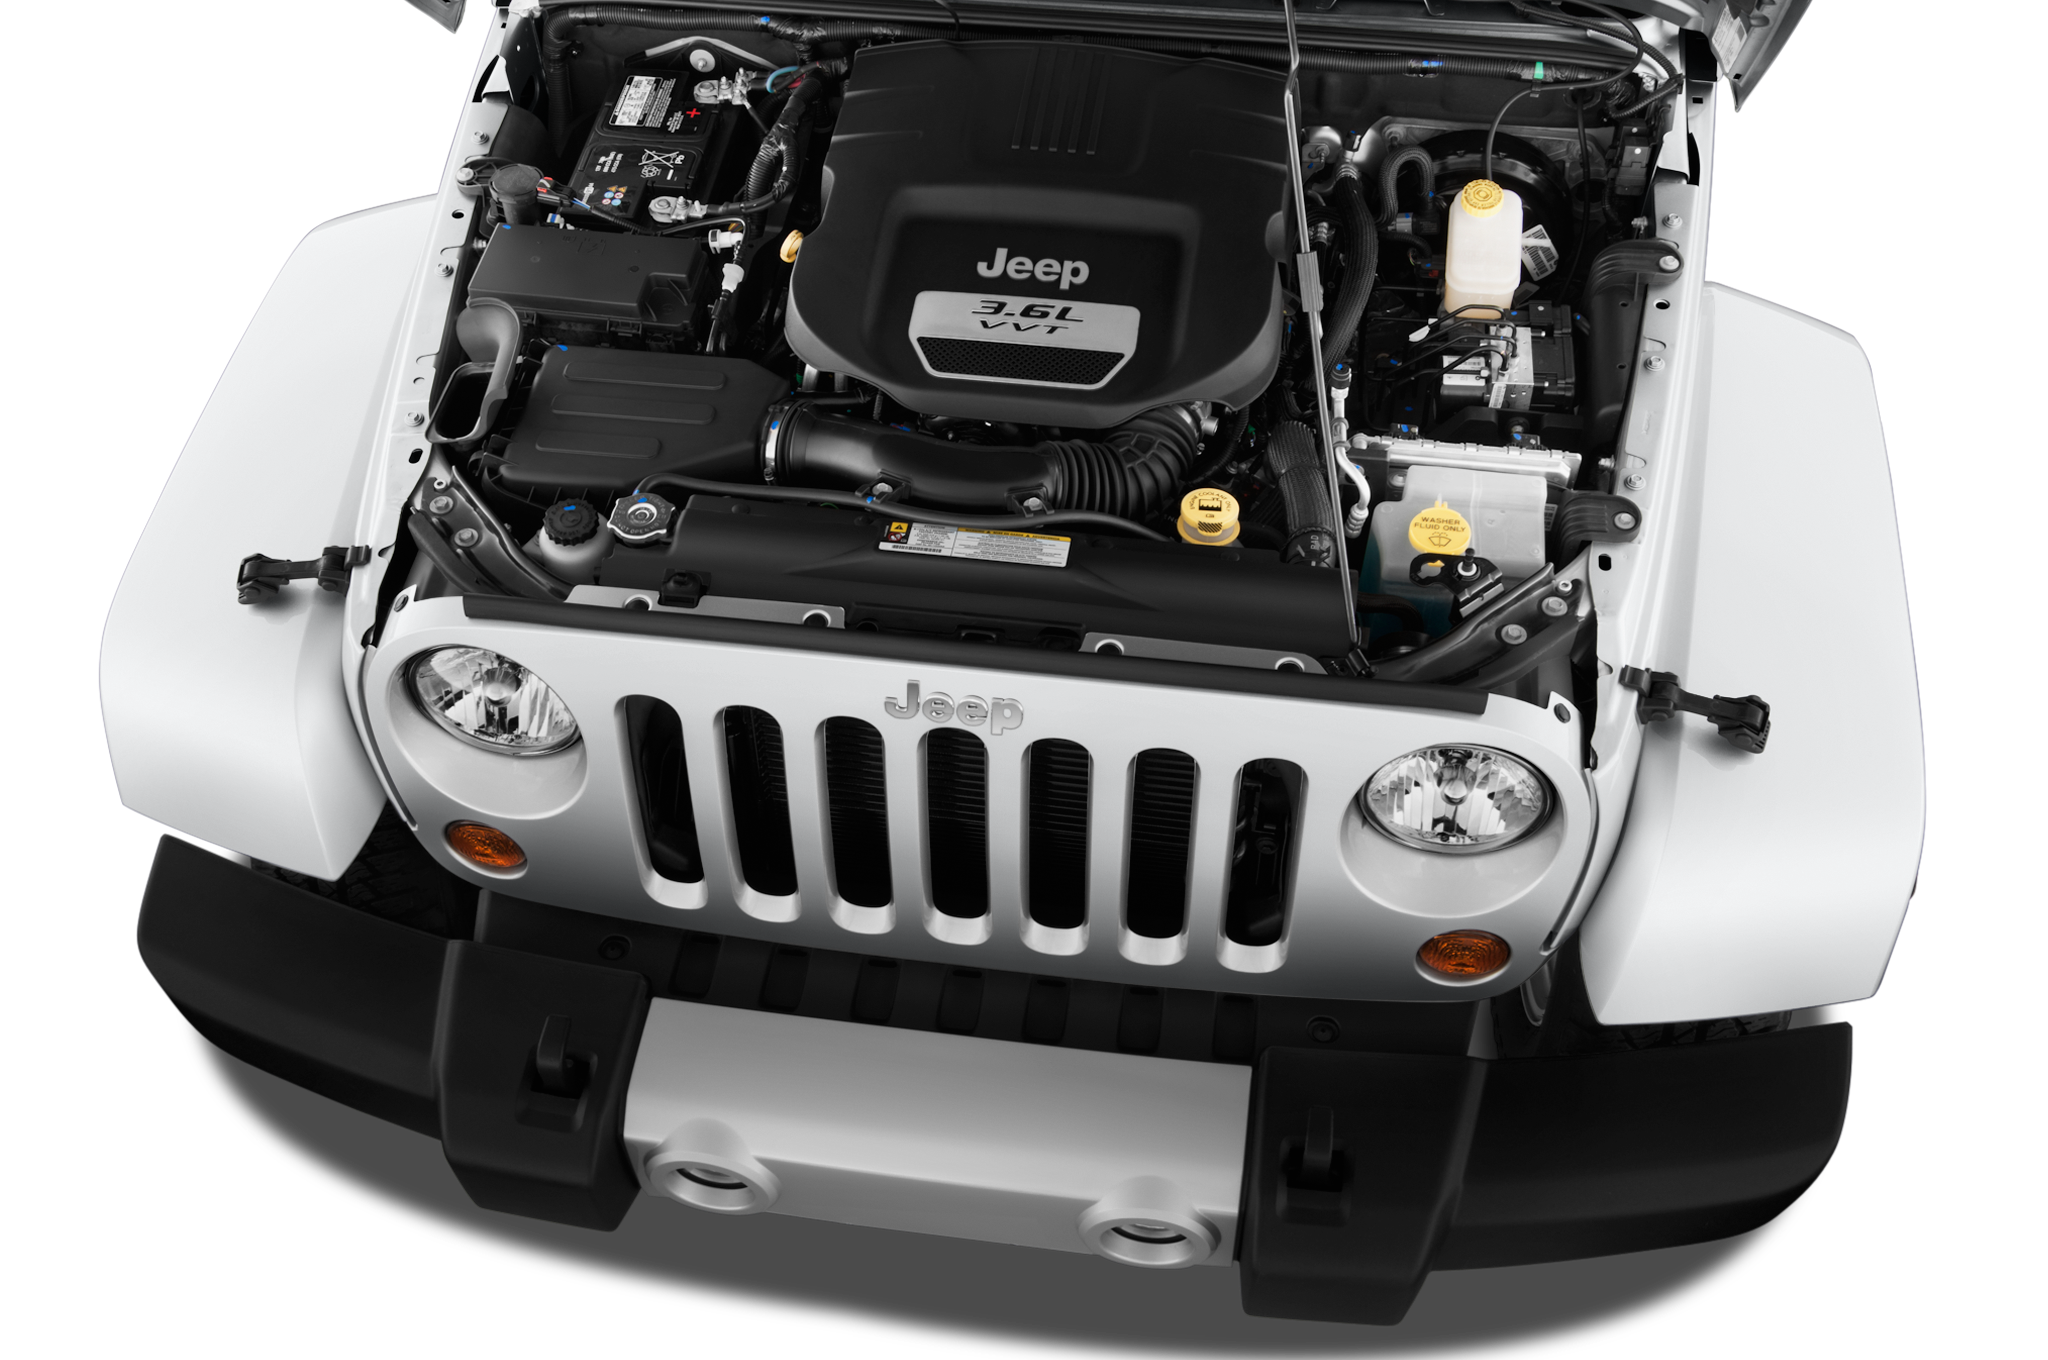 2010 jeep wrangler unlimited engine diagram all wiring diagram data 2010 Ford Fusion Hybrid Engine Diagram 2014 jeep engine diagram wiring library 2010 ford fusion engine 2010 jeep wrangler unlimited engine diagram